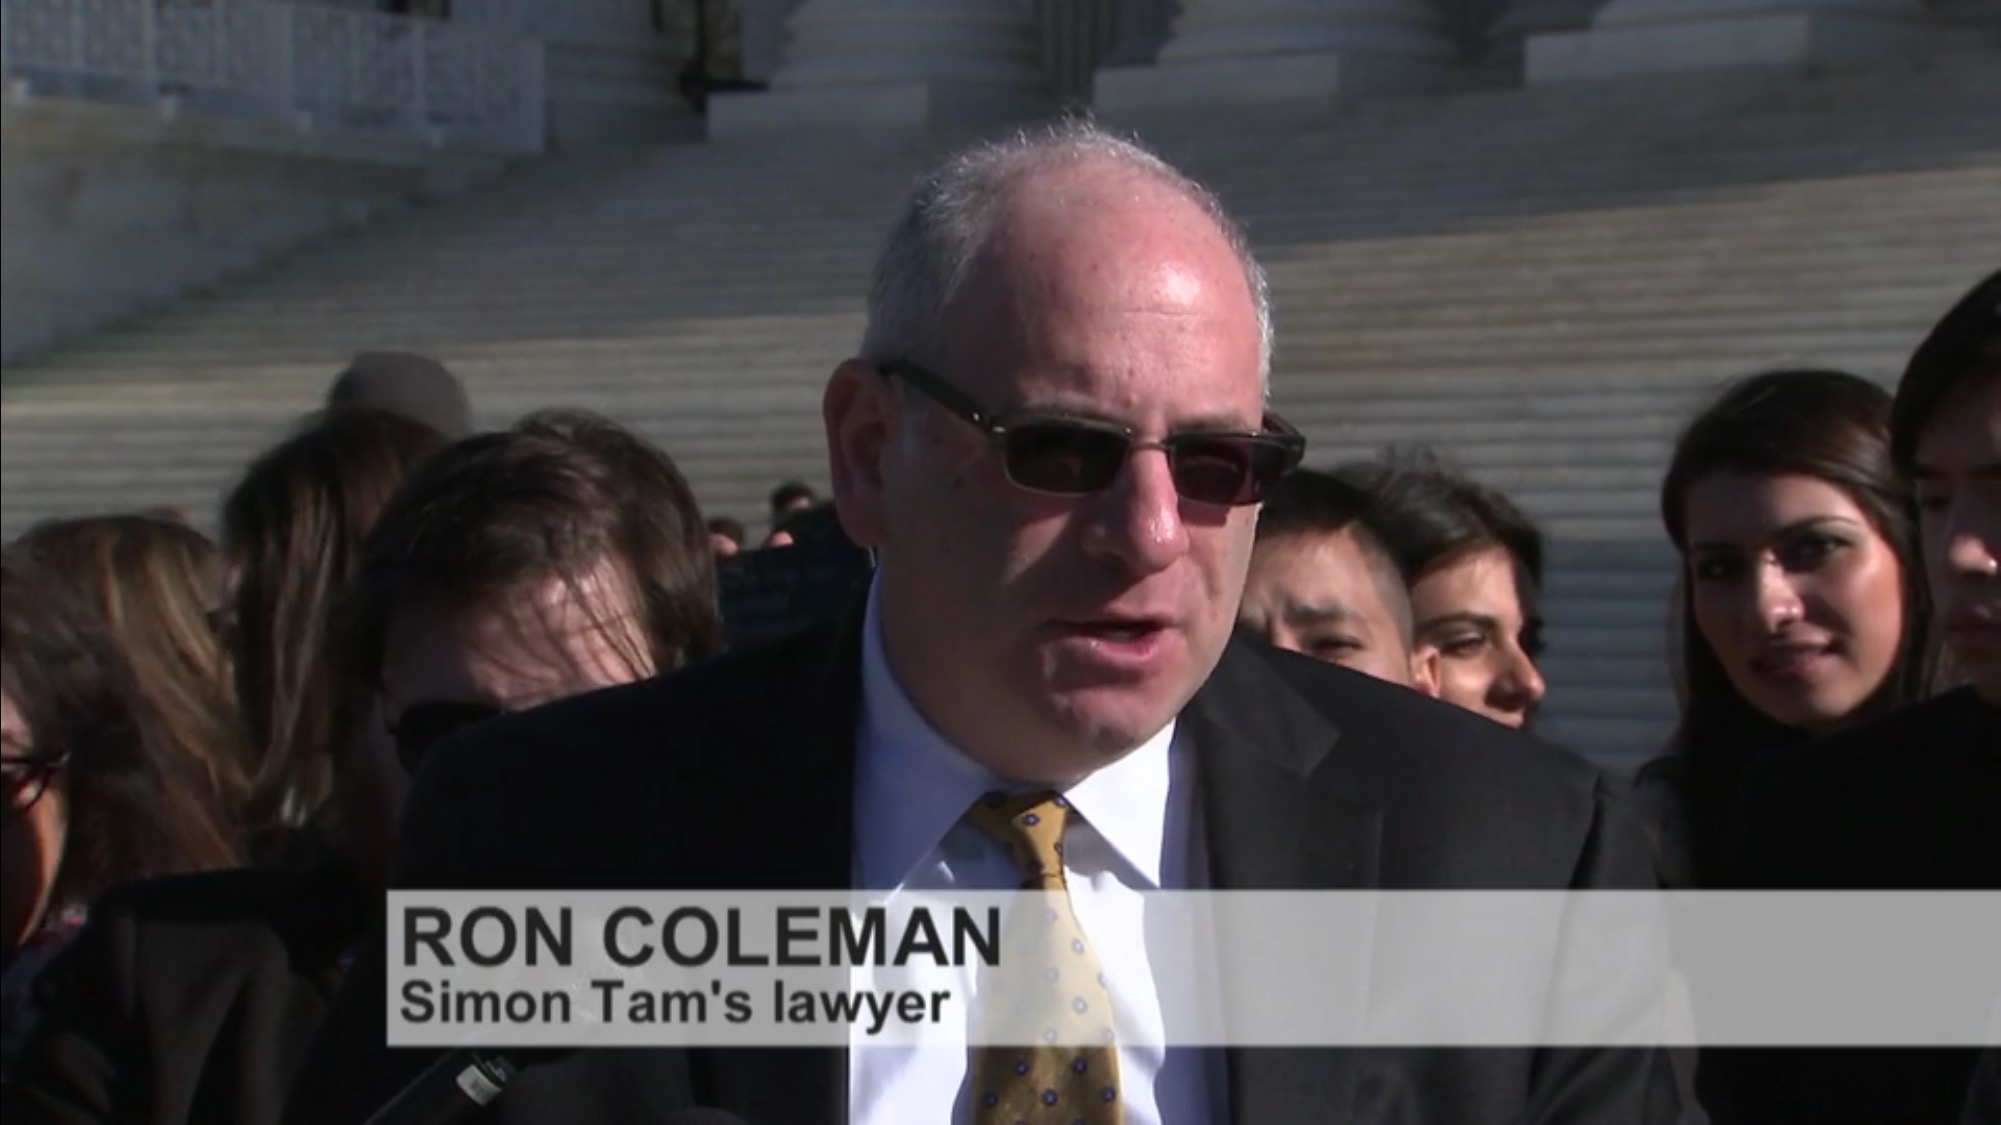 Ronald Coleman - Lawyer for the Slants at US Supreme Court